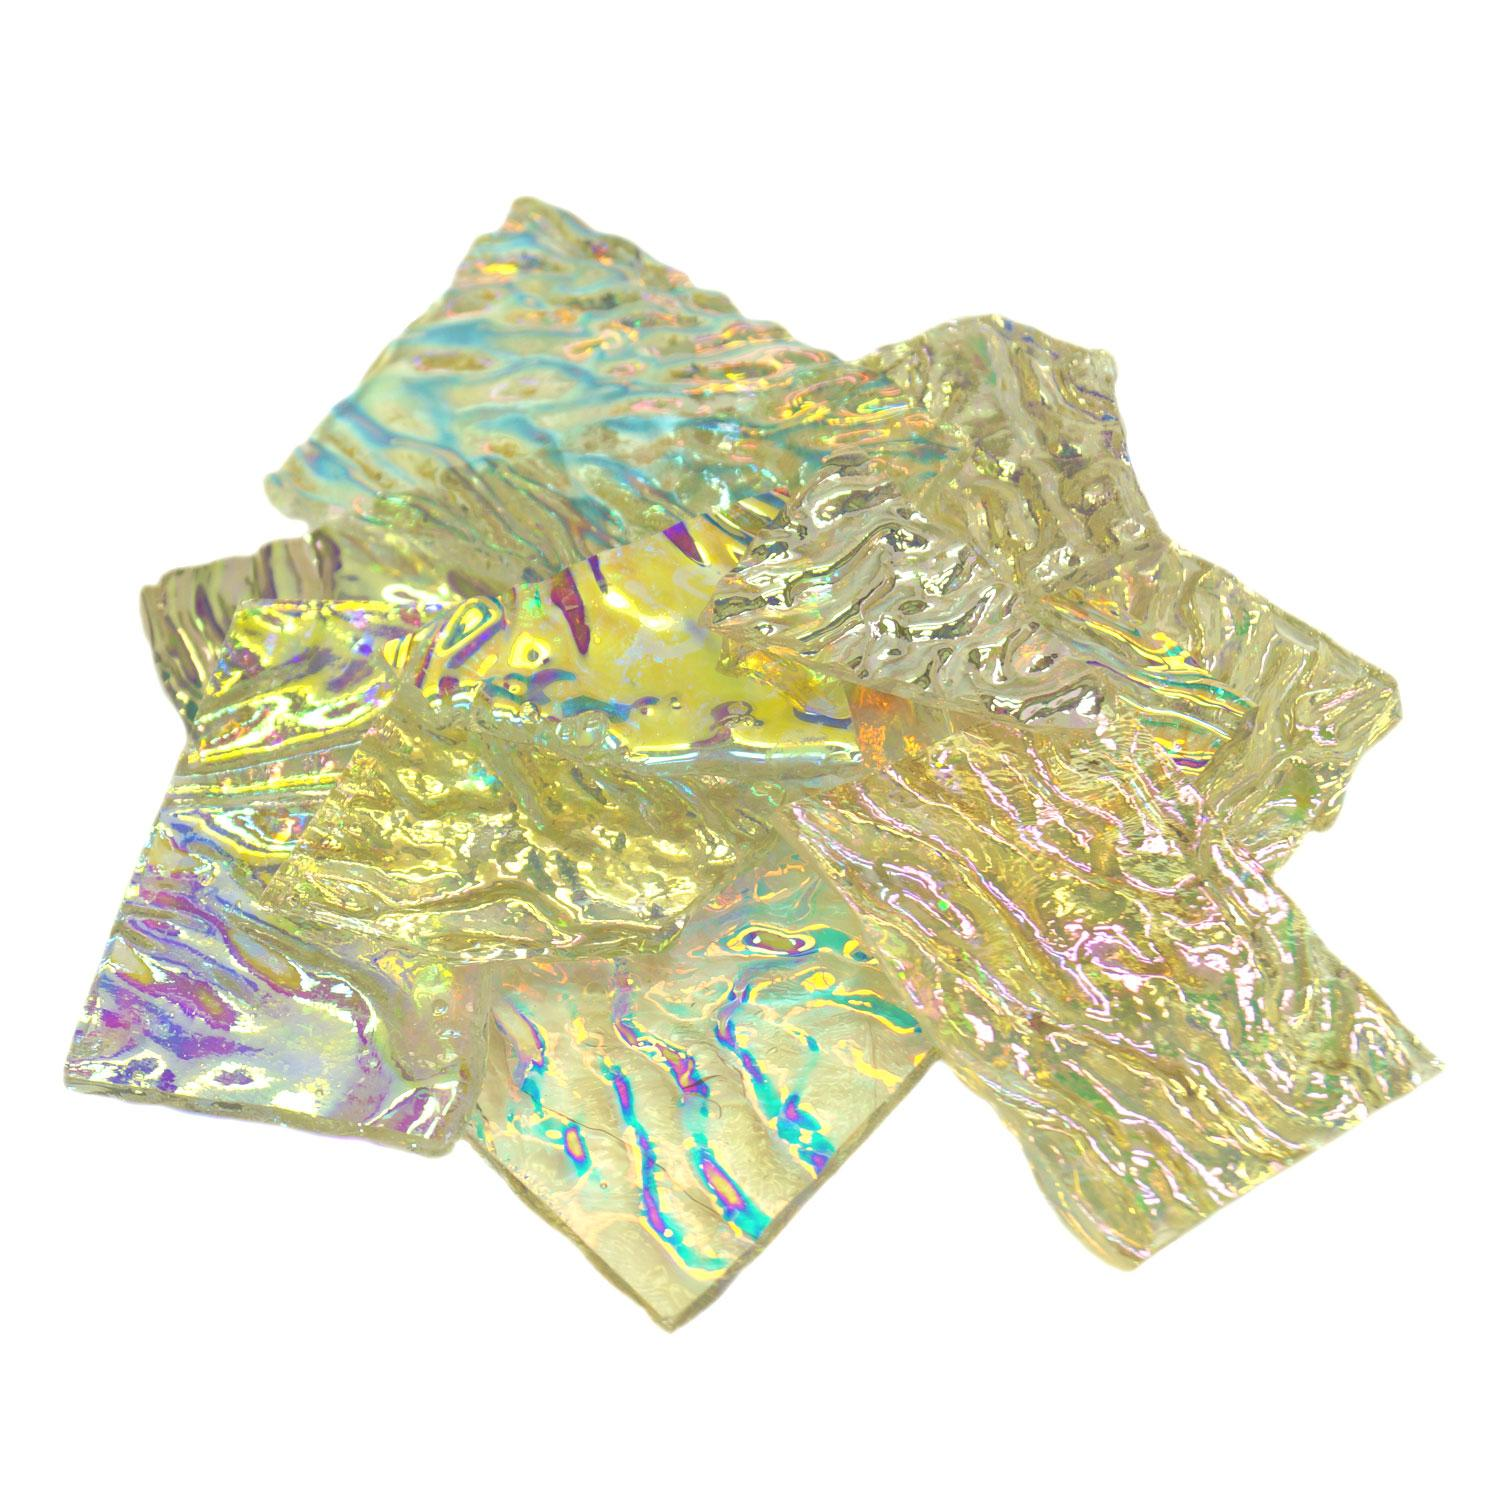 1/2 Lb Premium Dichroic Scrap on Uroboros Clear Herringbone Ripple - 96 COE